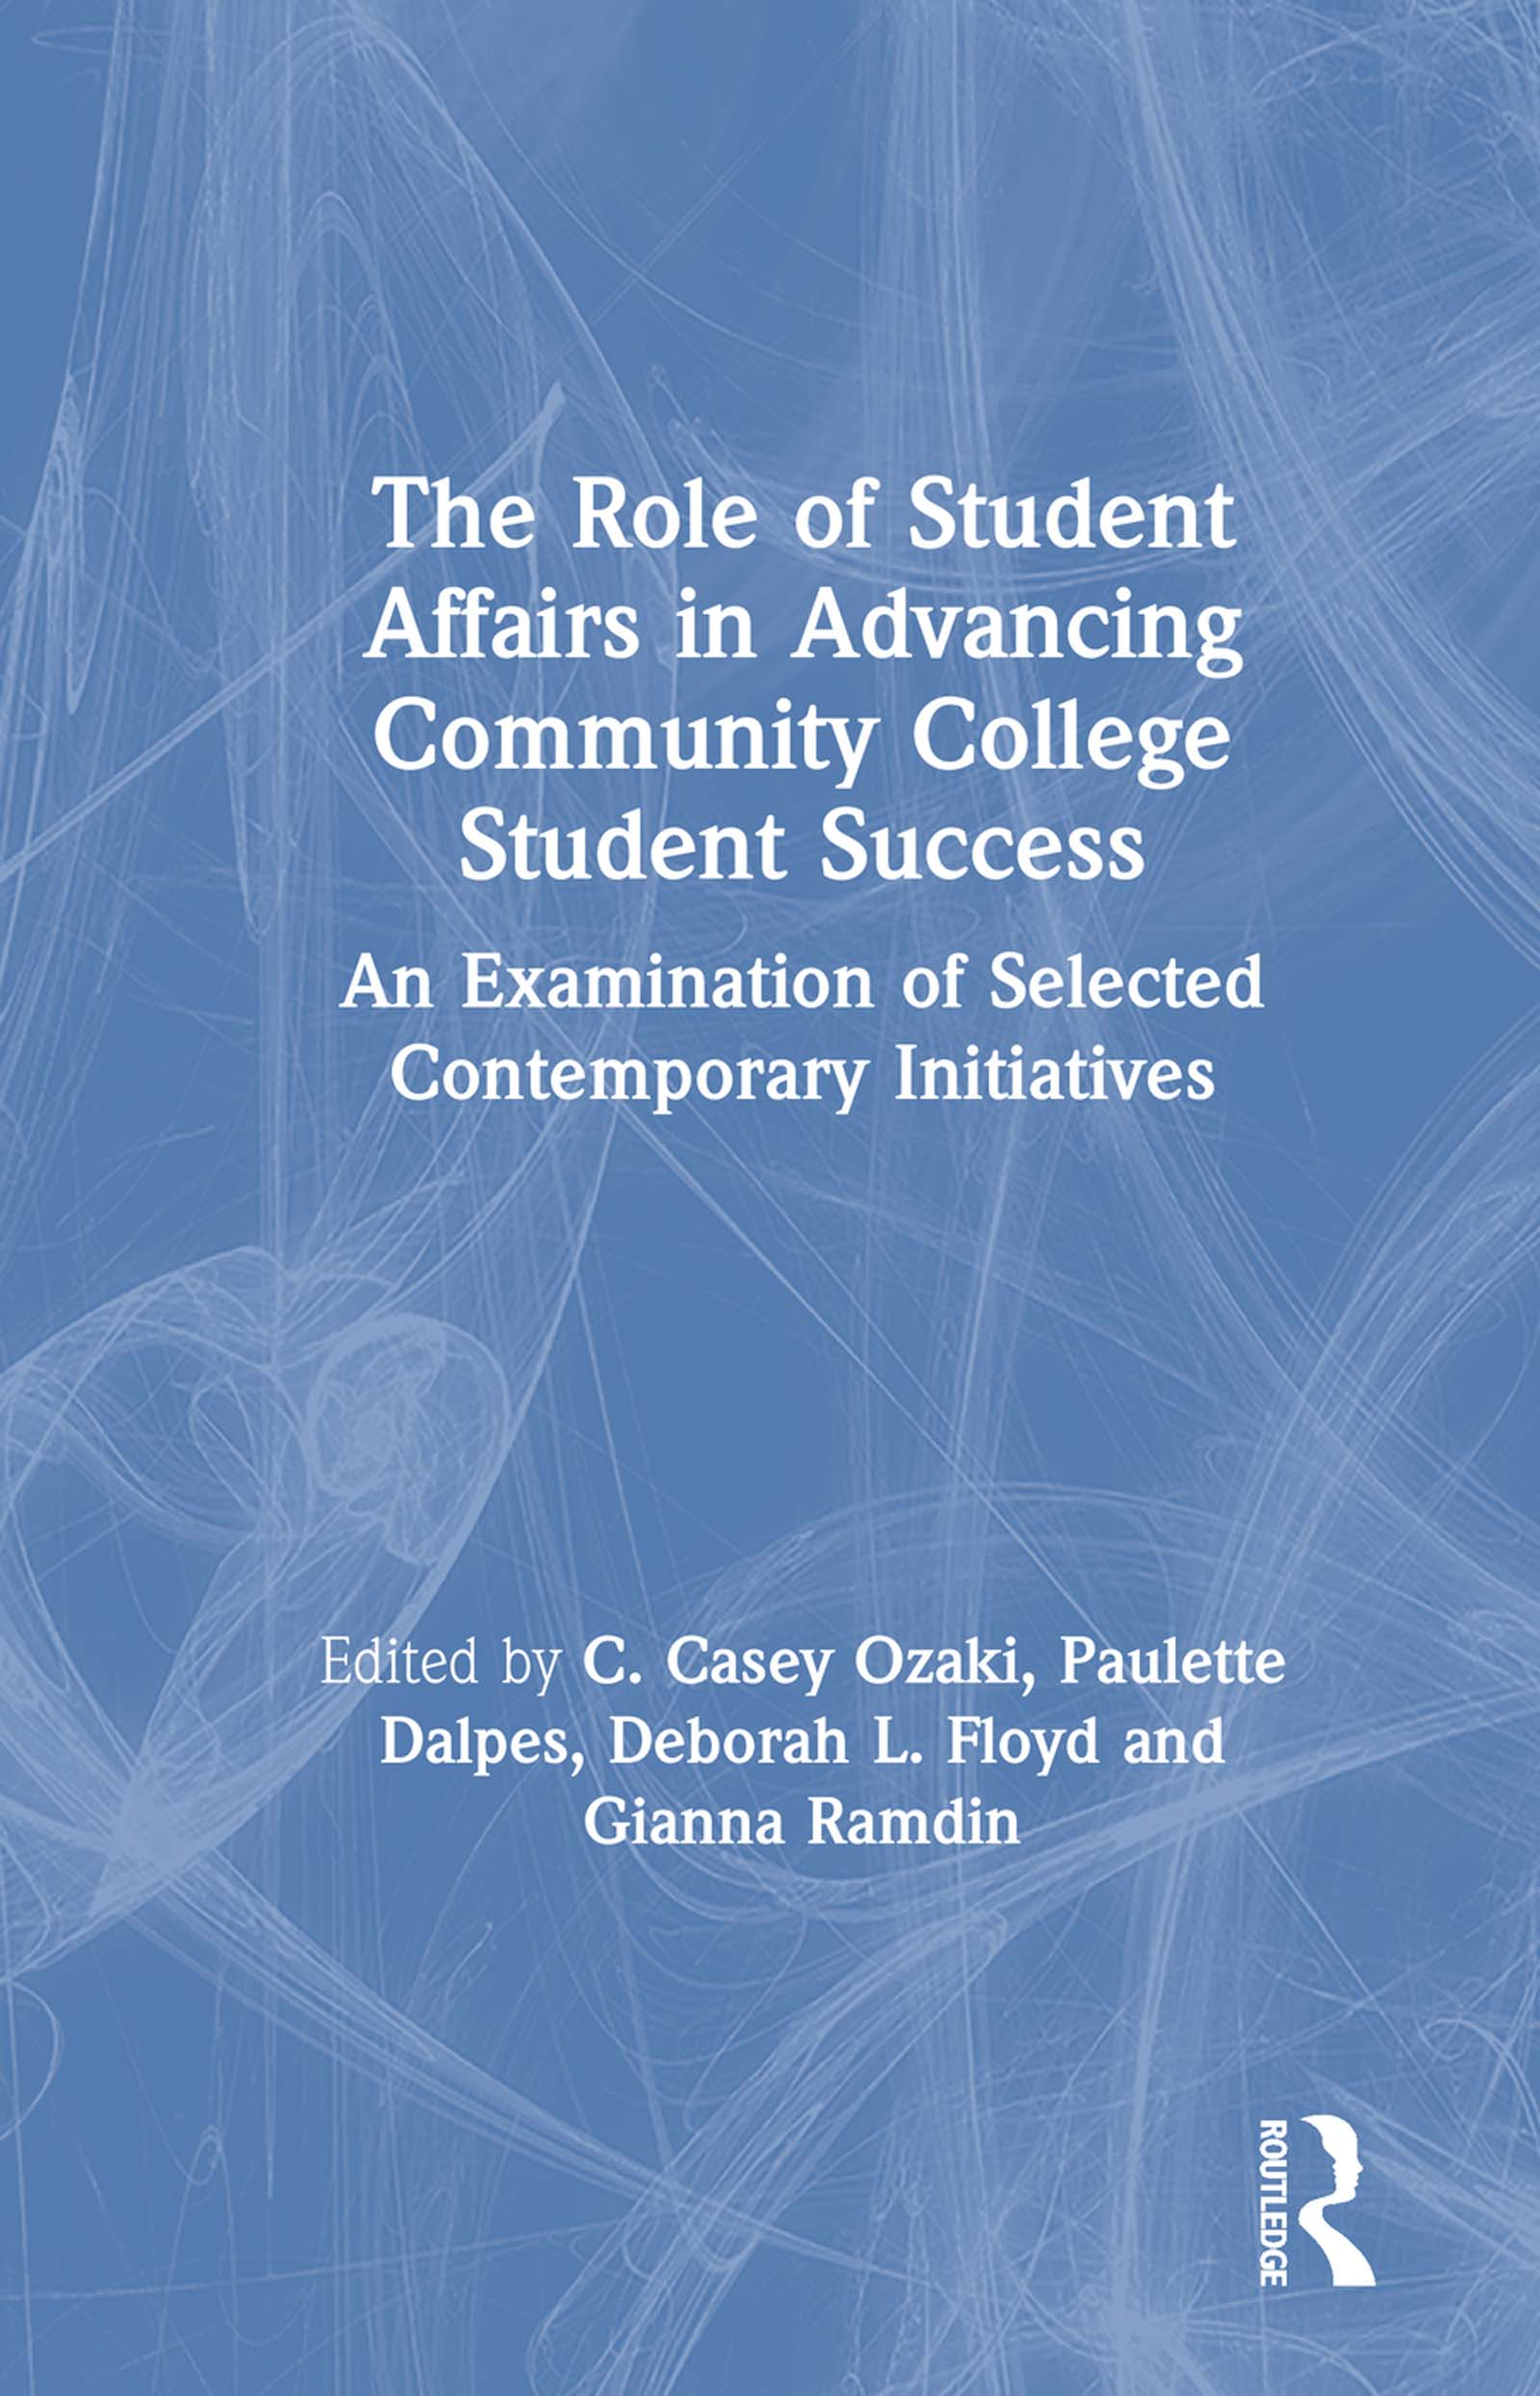 The Role of Student Affairs in Advancing Community College Student Success: An Examination of Selected Contemporary Initiatives book cover